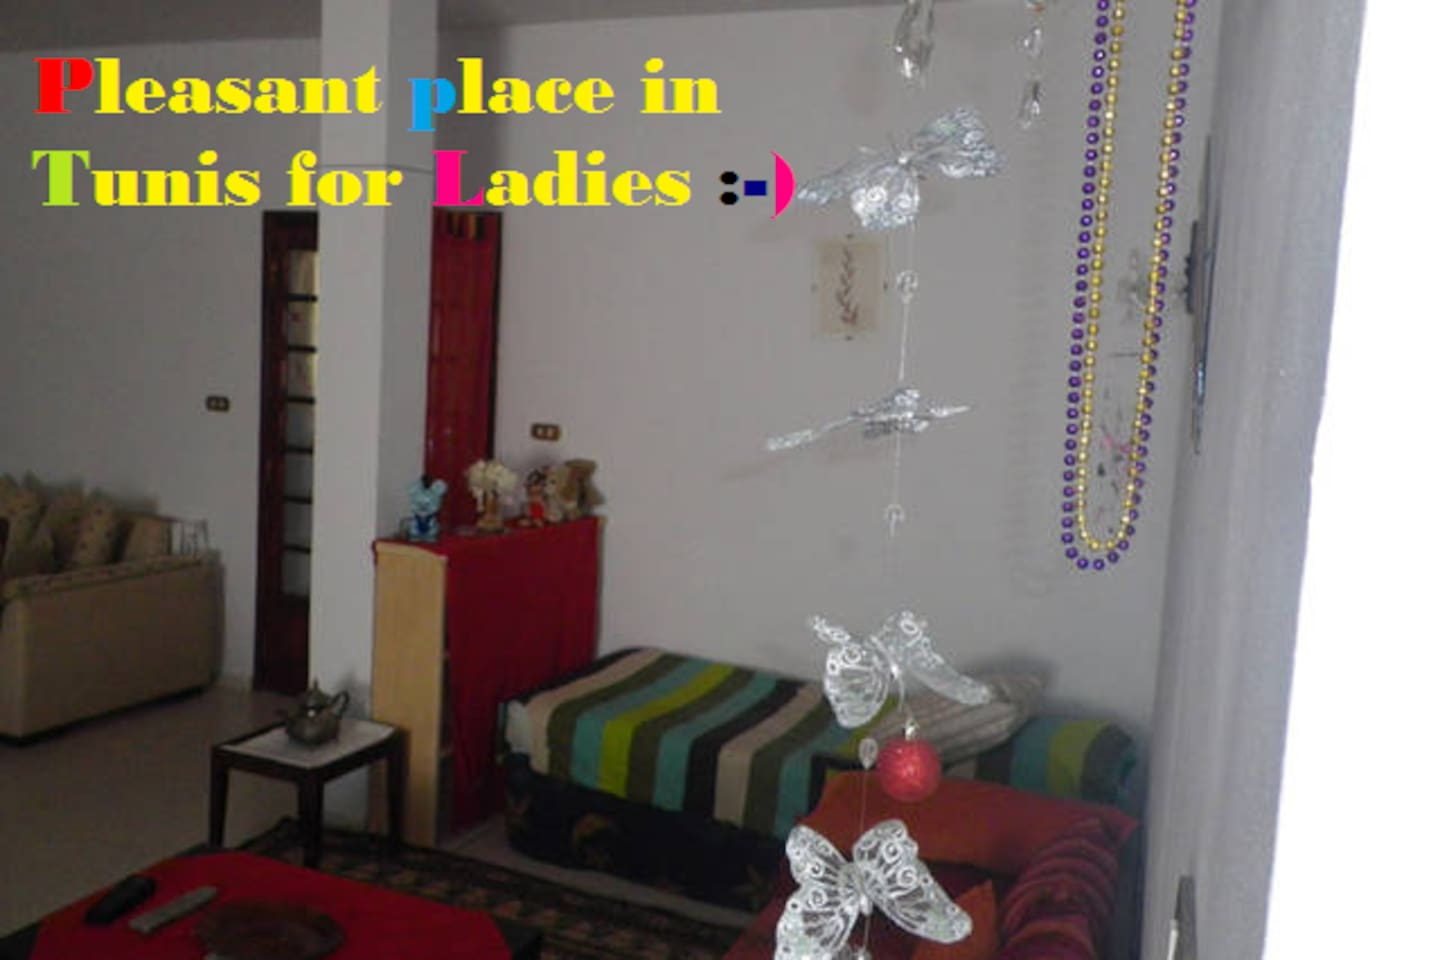 Pleasant place in vatse house4 lady